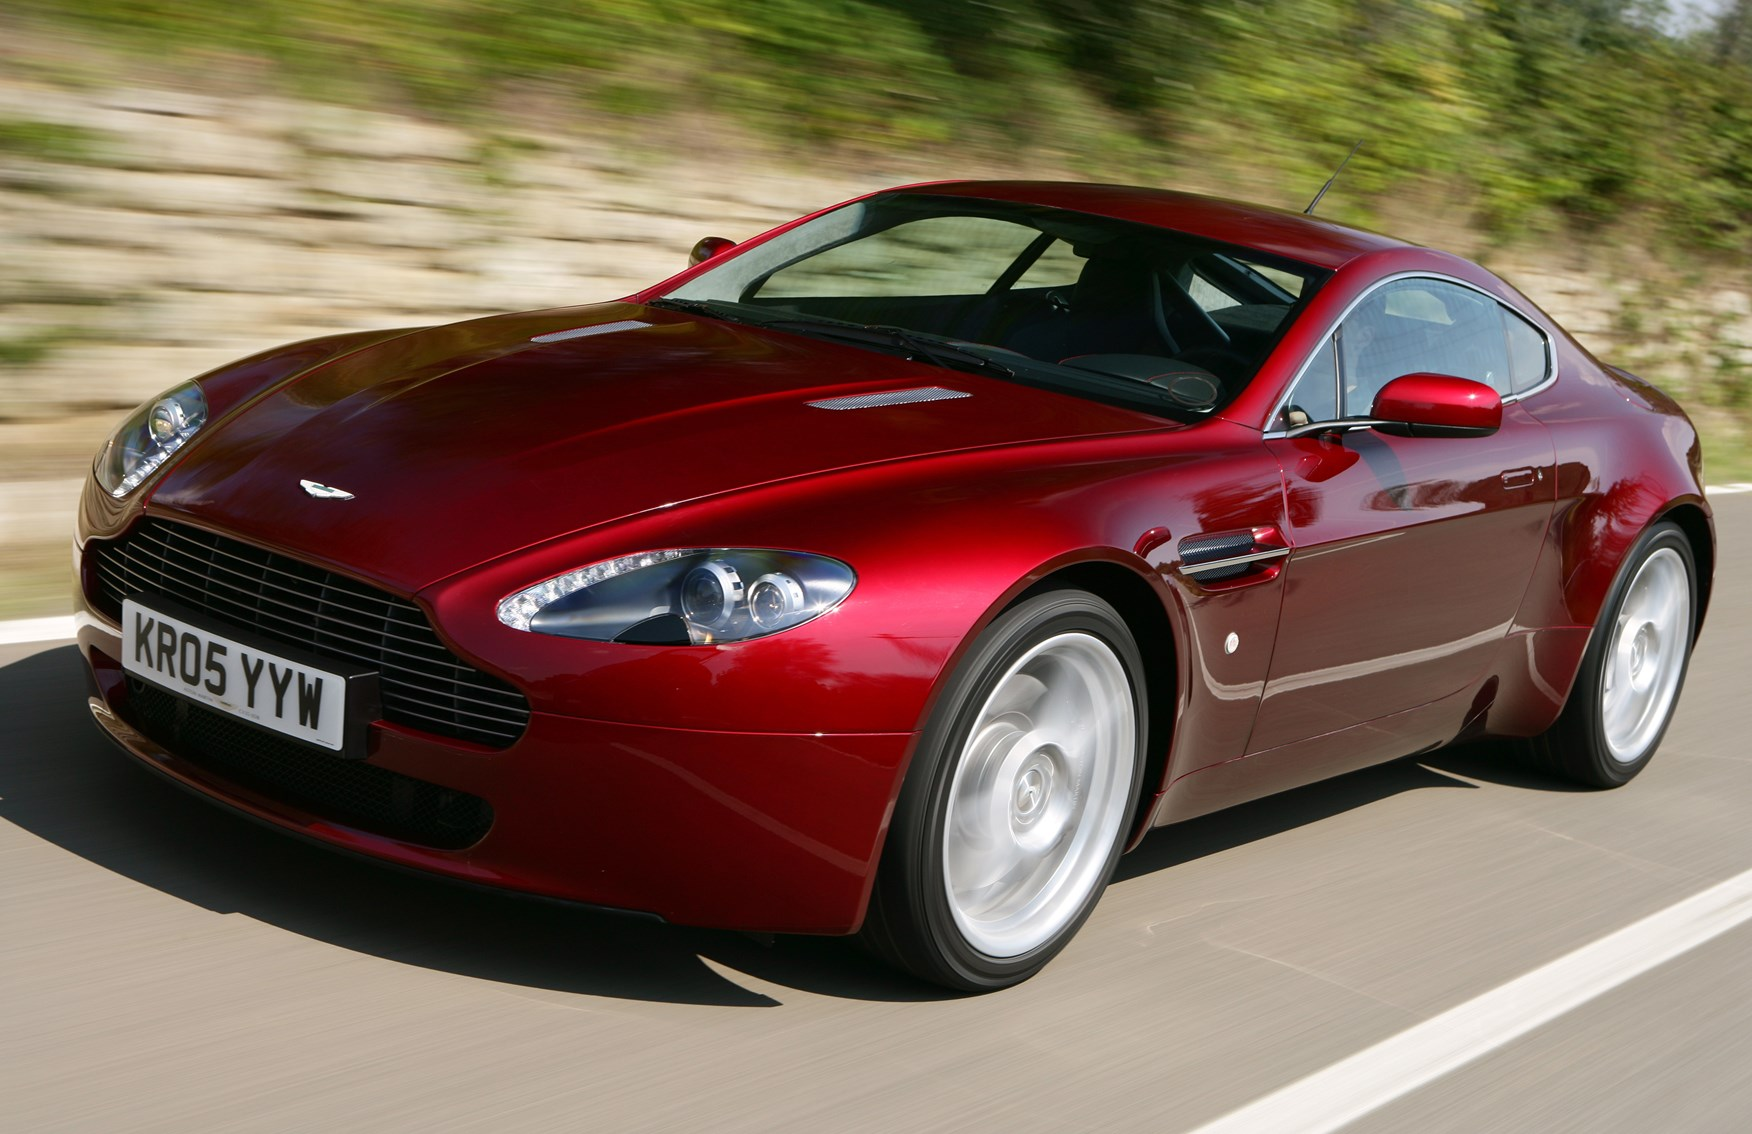 Beautiful View All Images Of The Aston Martin Vantage (05 18) Awesome Ideas